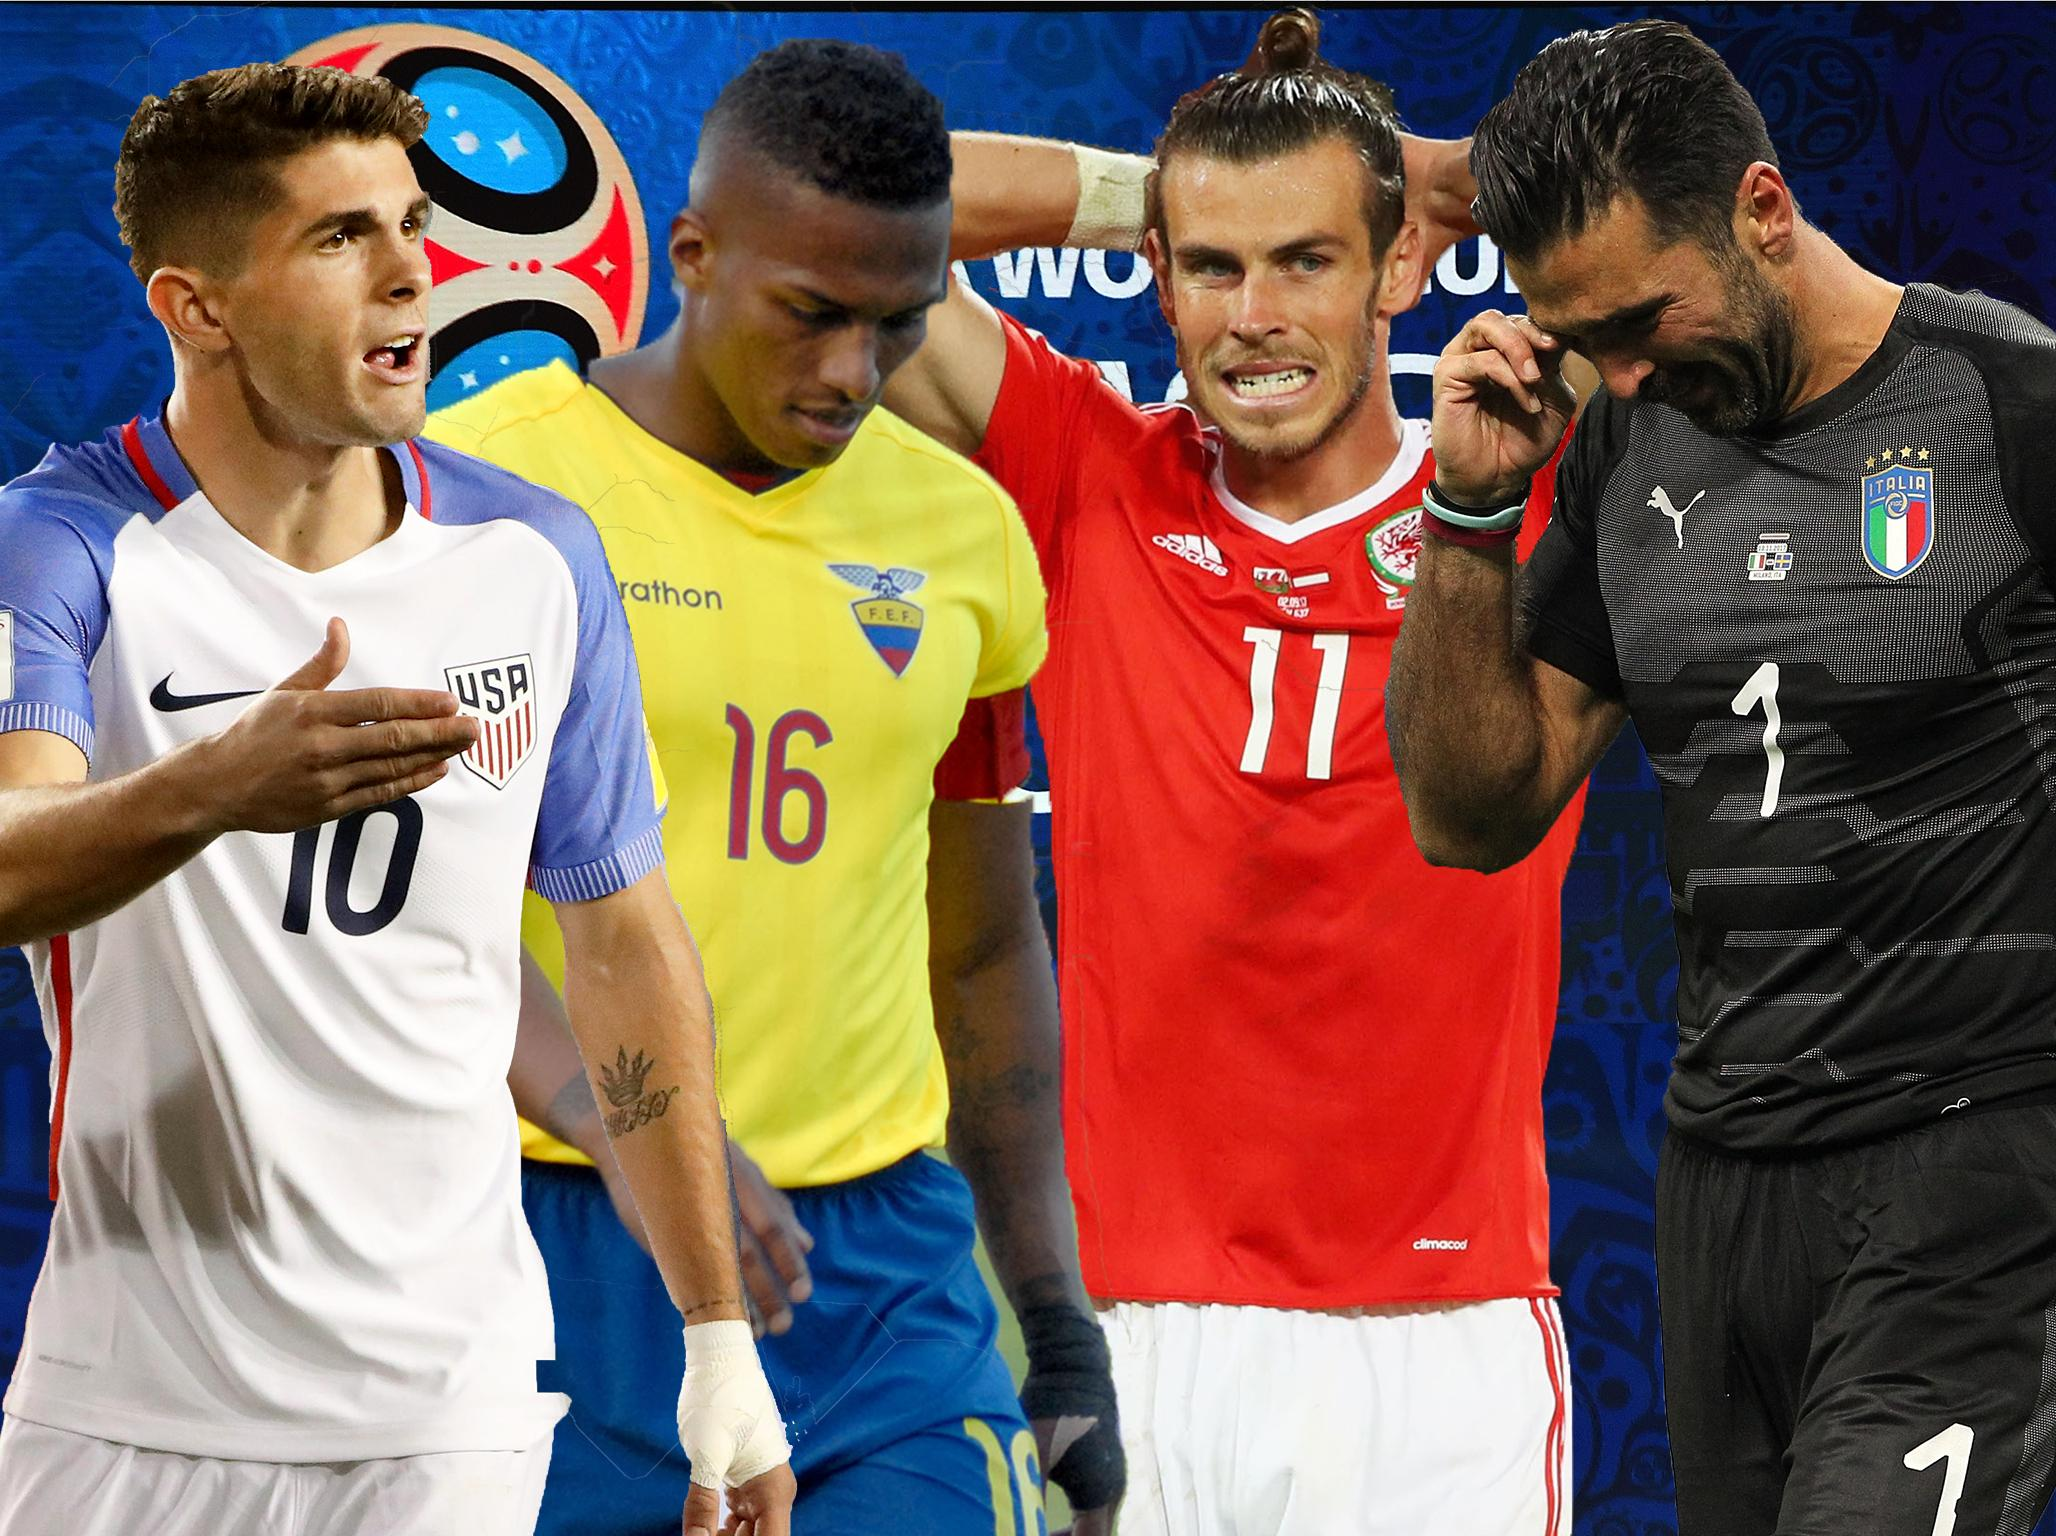 Gianluigi Buffon, Alexis Sanchez, Naby Keita and more: The best XI of players not at the 2018 World Cup